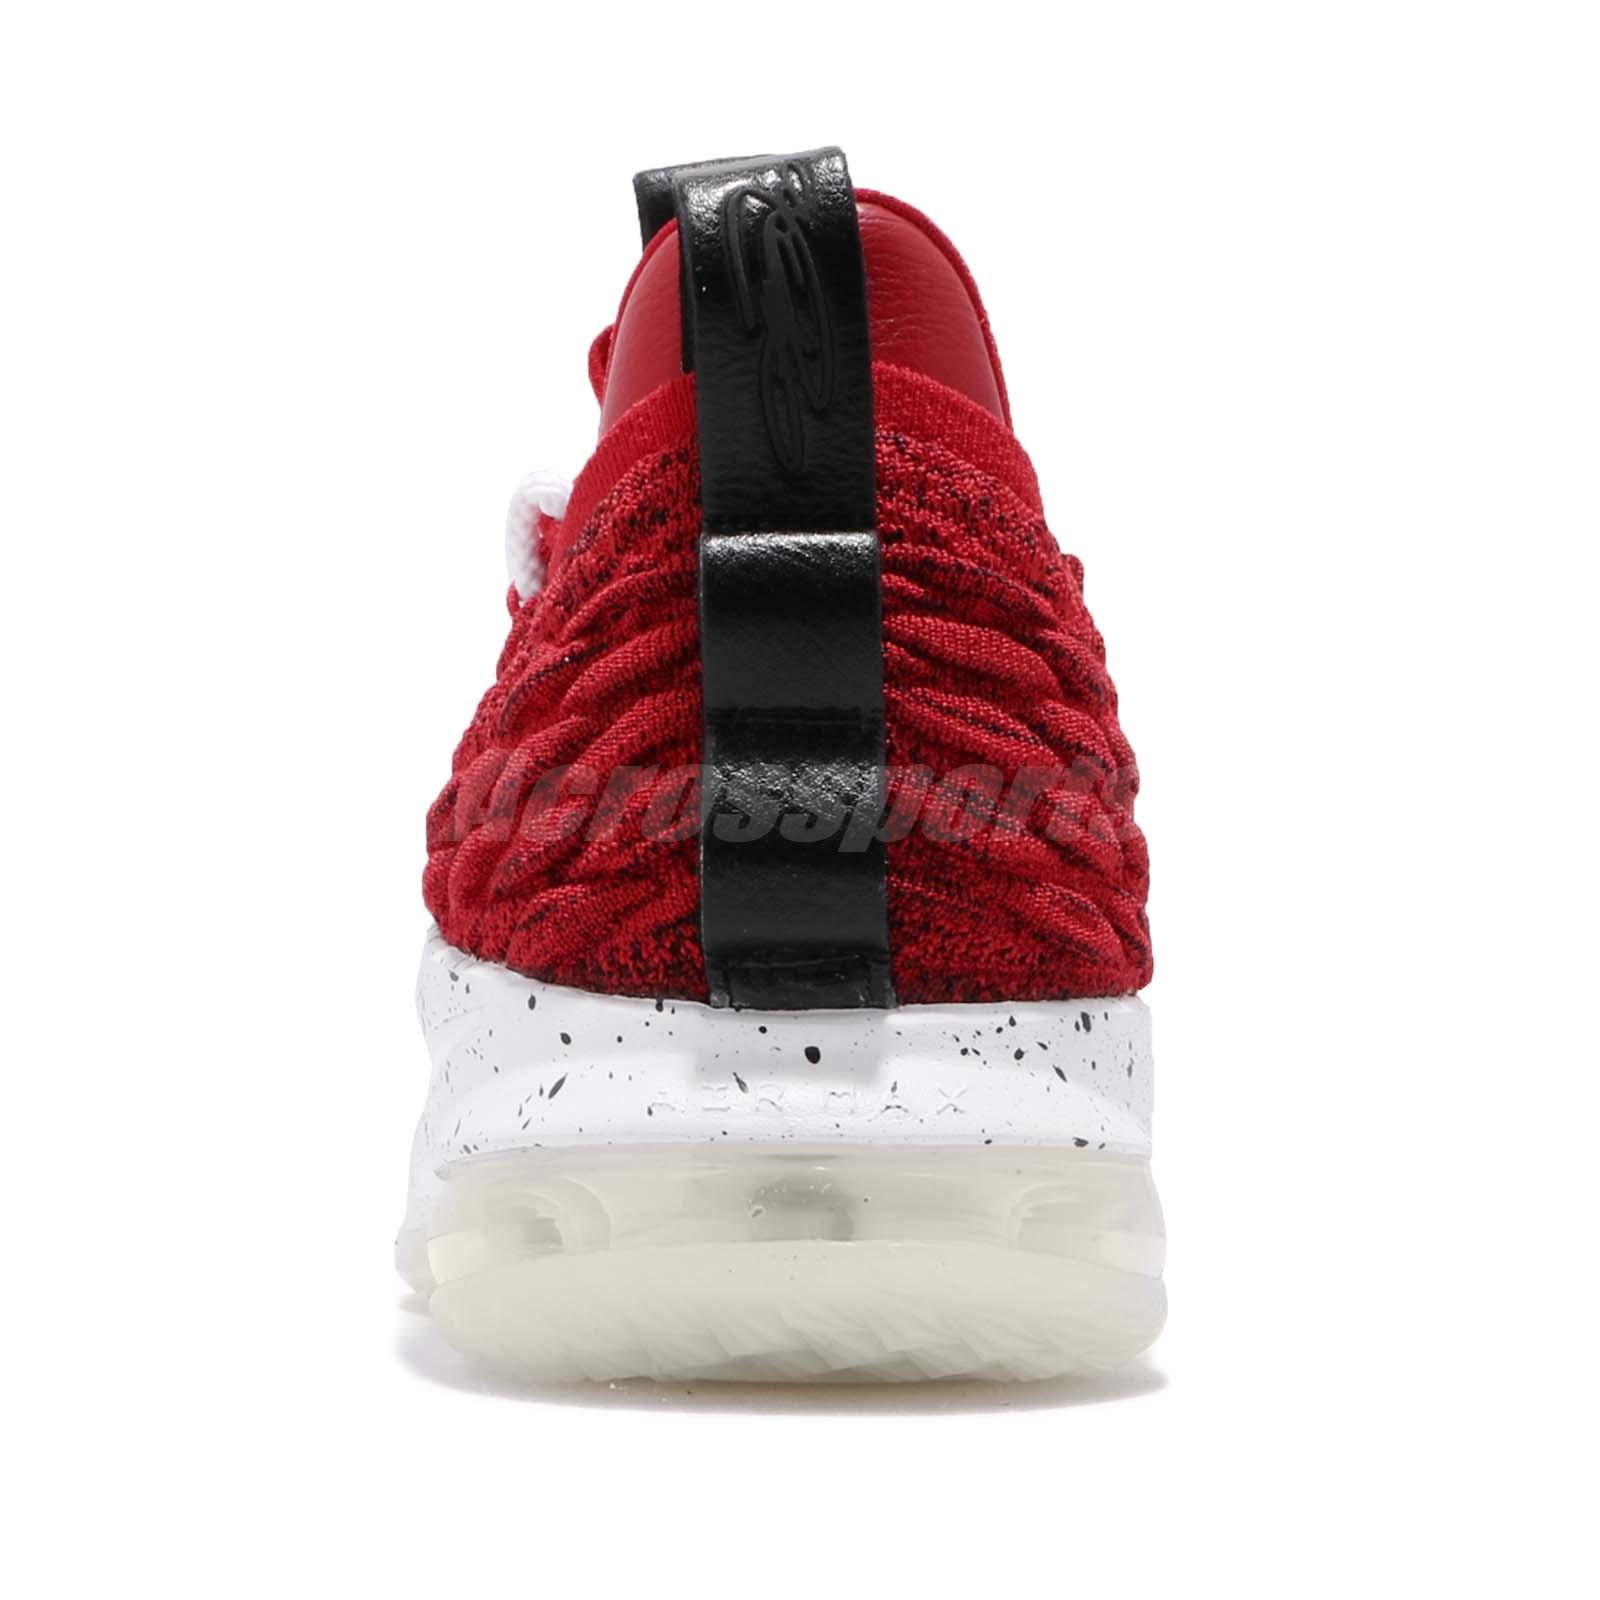 Nike Lebron Xv Low Ep 15 University Red James Air Basketball Shoes Ao1756-600 Athletic Shoes